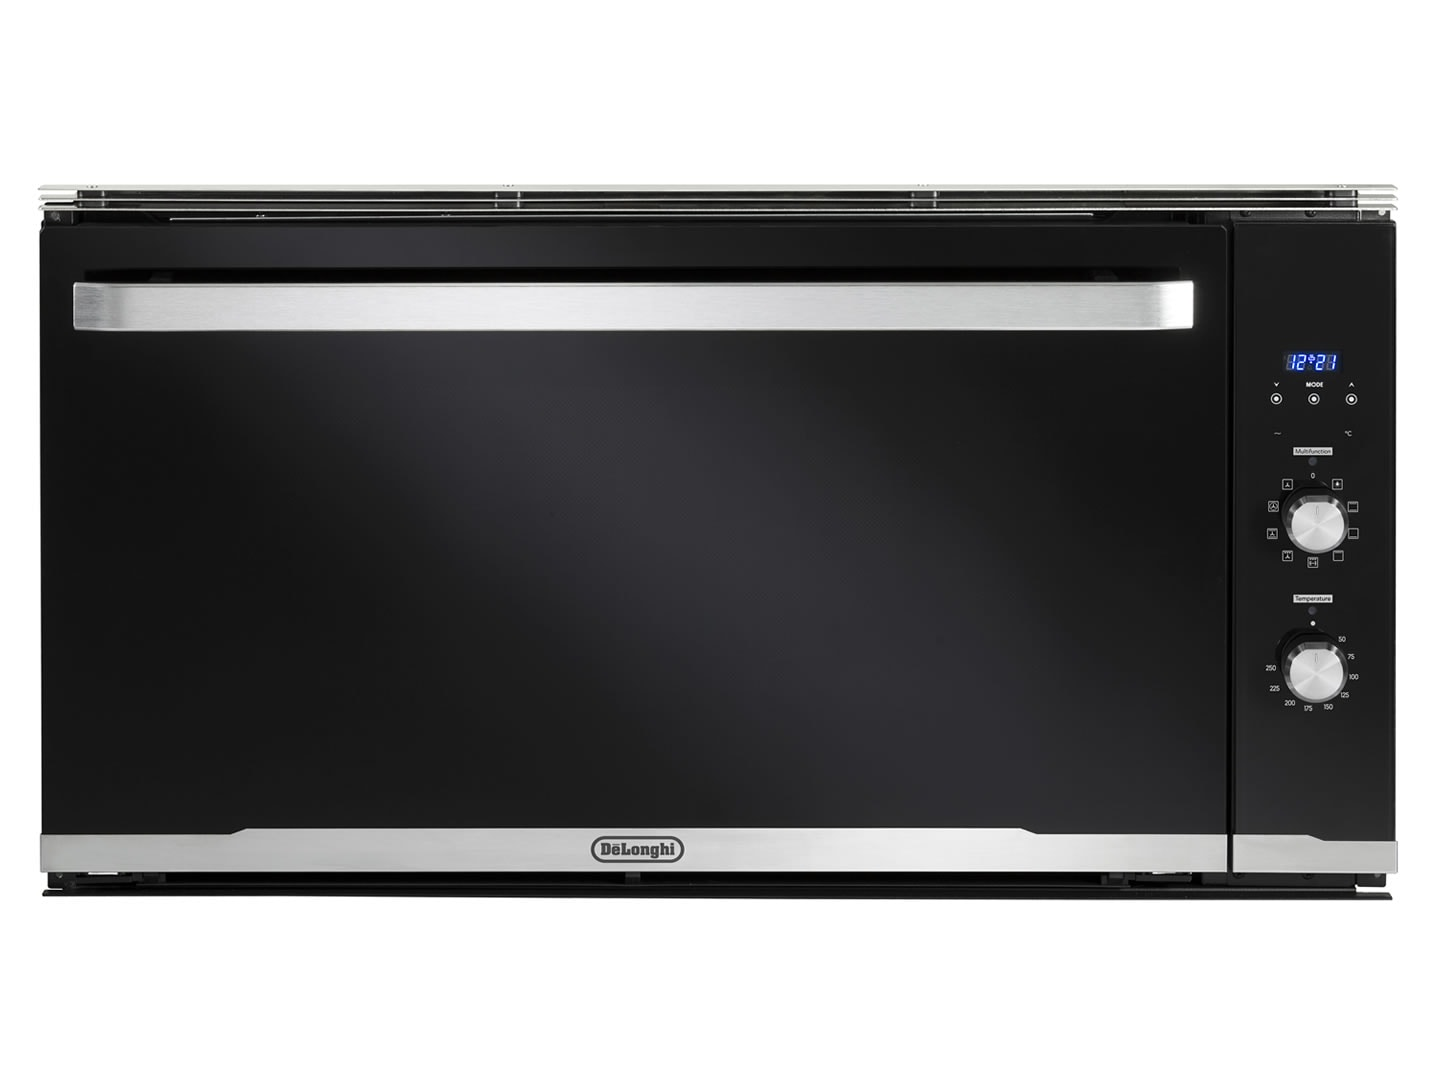 Delonghi Microwave Oven User Guide Bestmicrowave